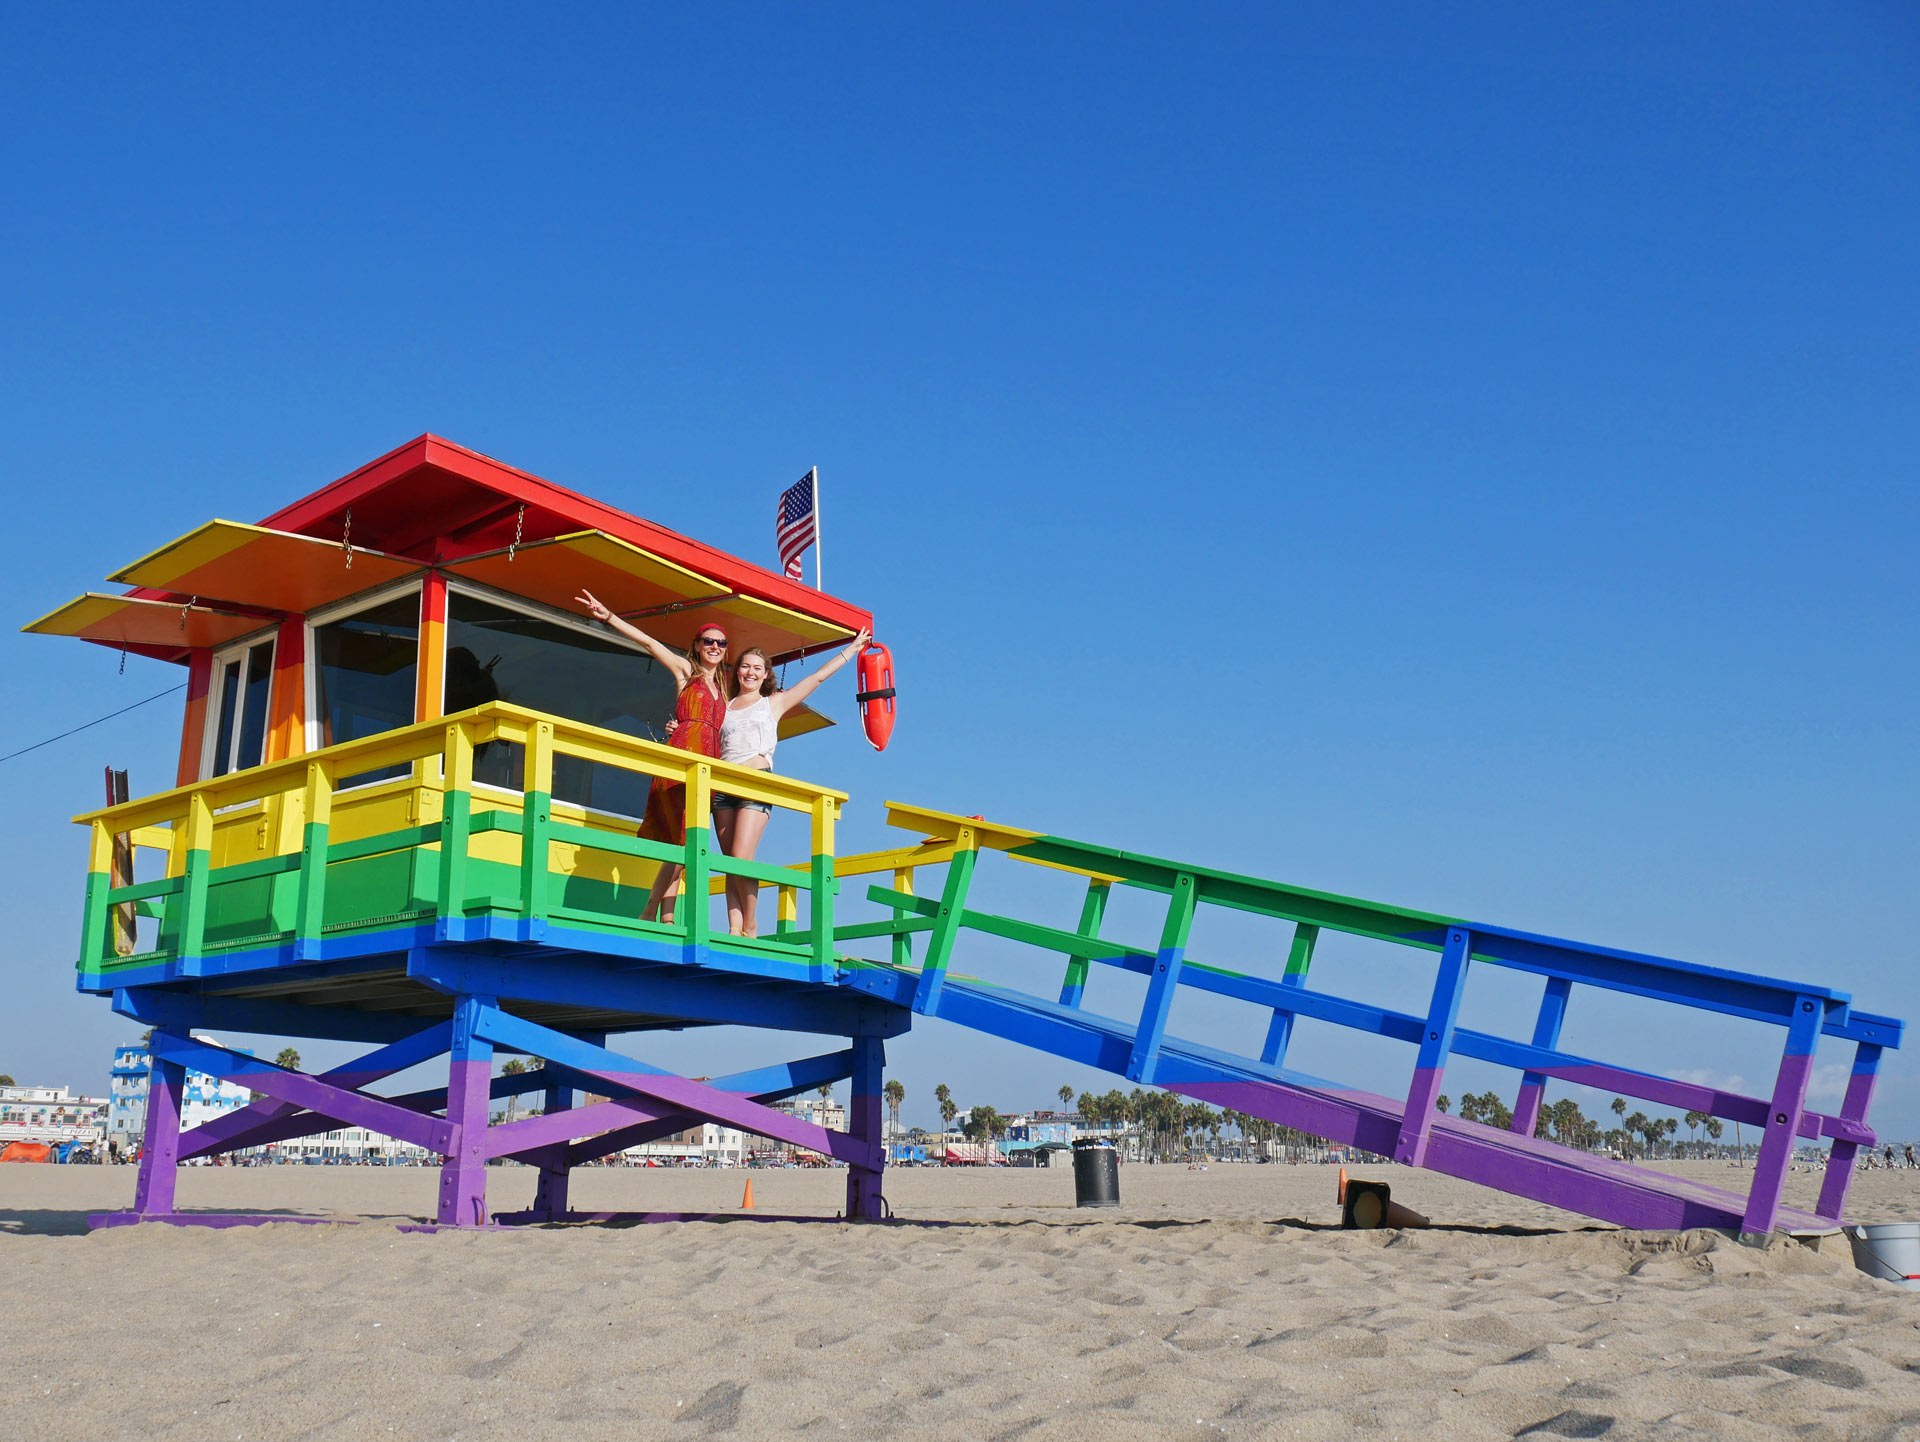 Sisters showing peace on Rainbow Lifeguard Tower at Venice Beach in LA, CA